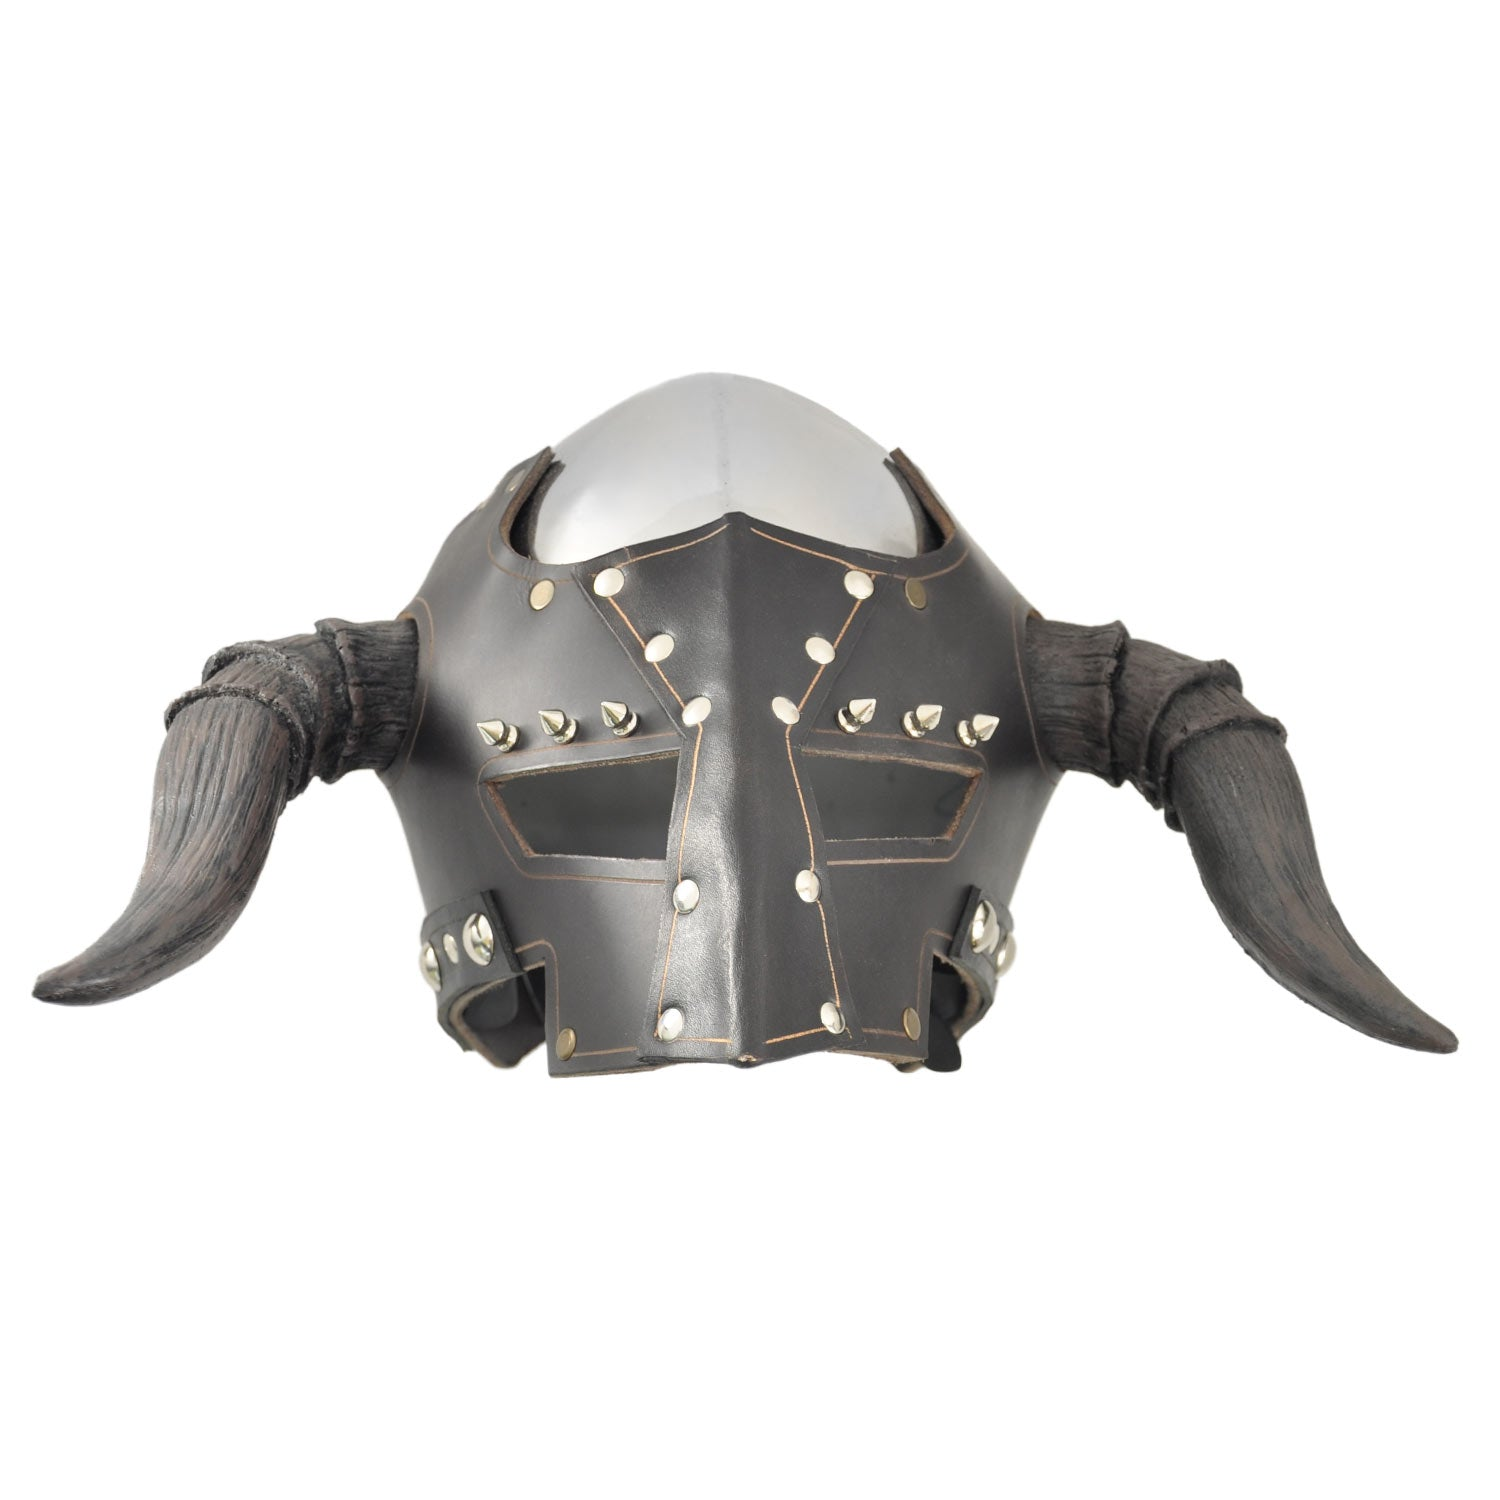 Monsterkiller's Helm